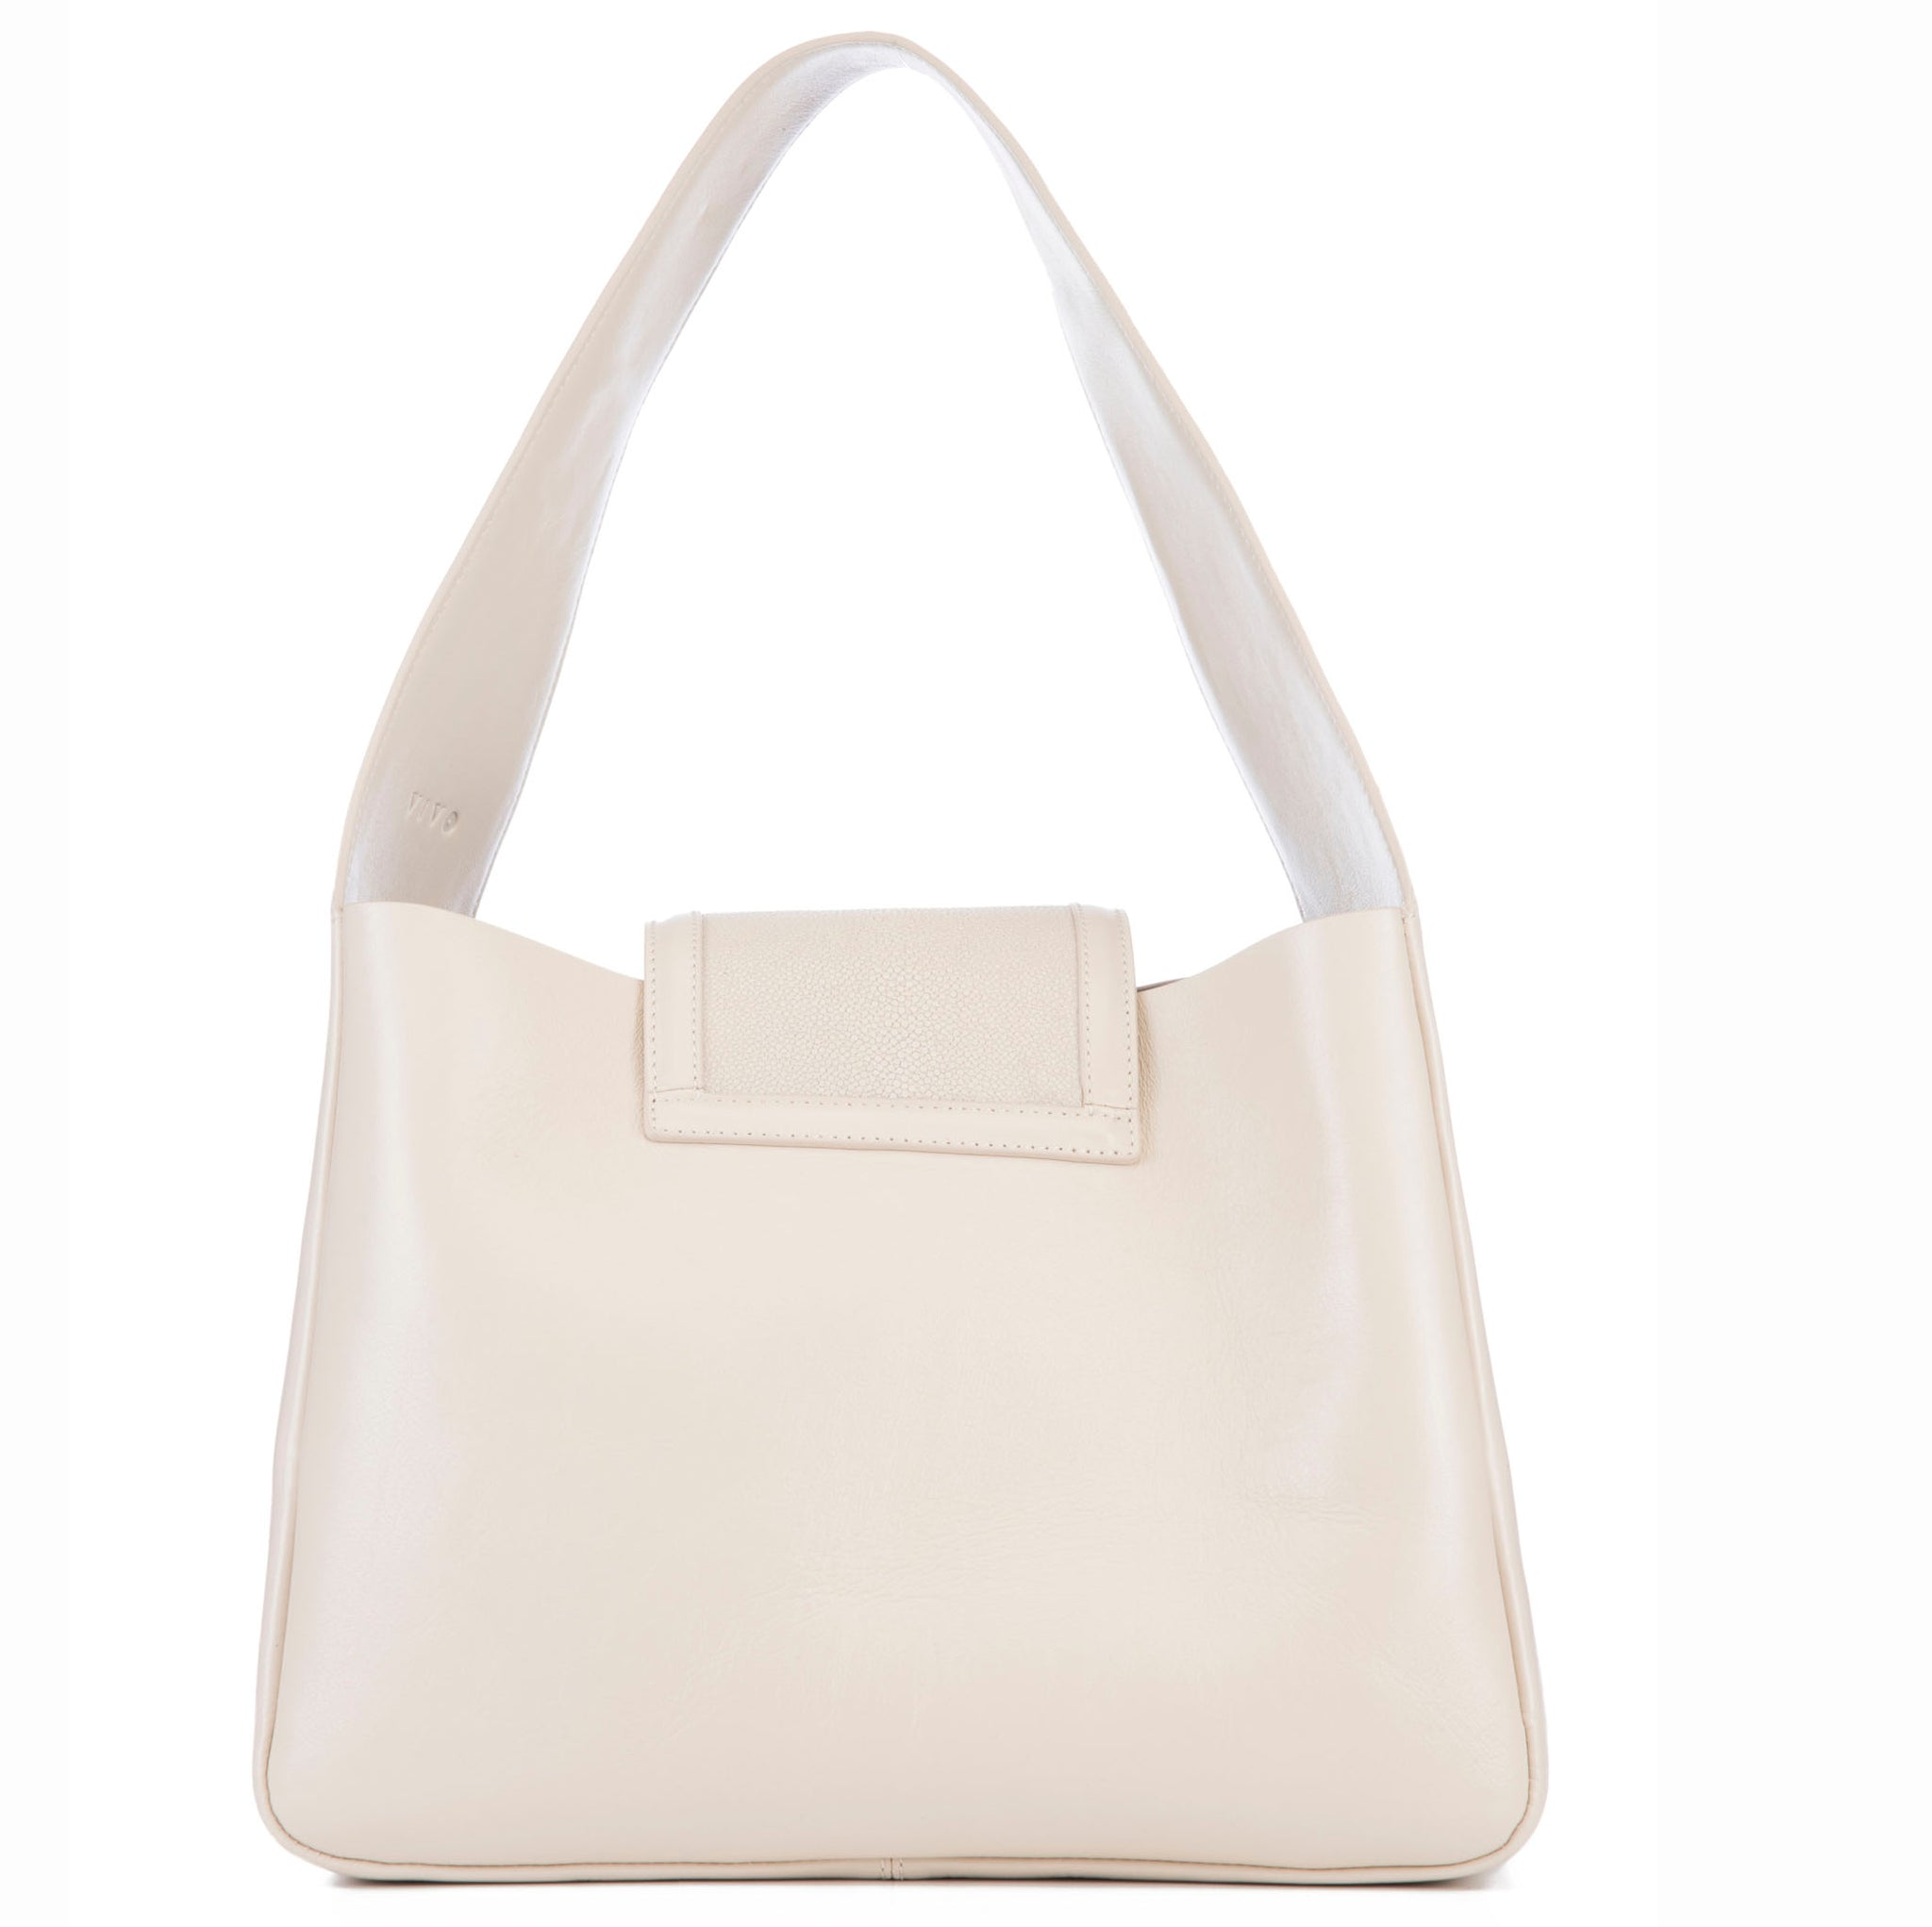 Eve Ivory Leather Shoulder Tote With Wheat Shagreen Flap And Leather Knot Detail Back View - Vivo Direct